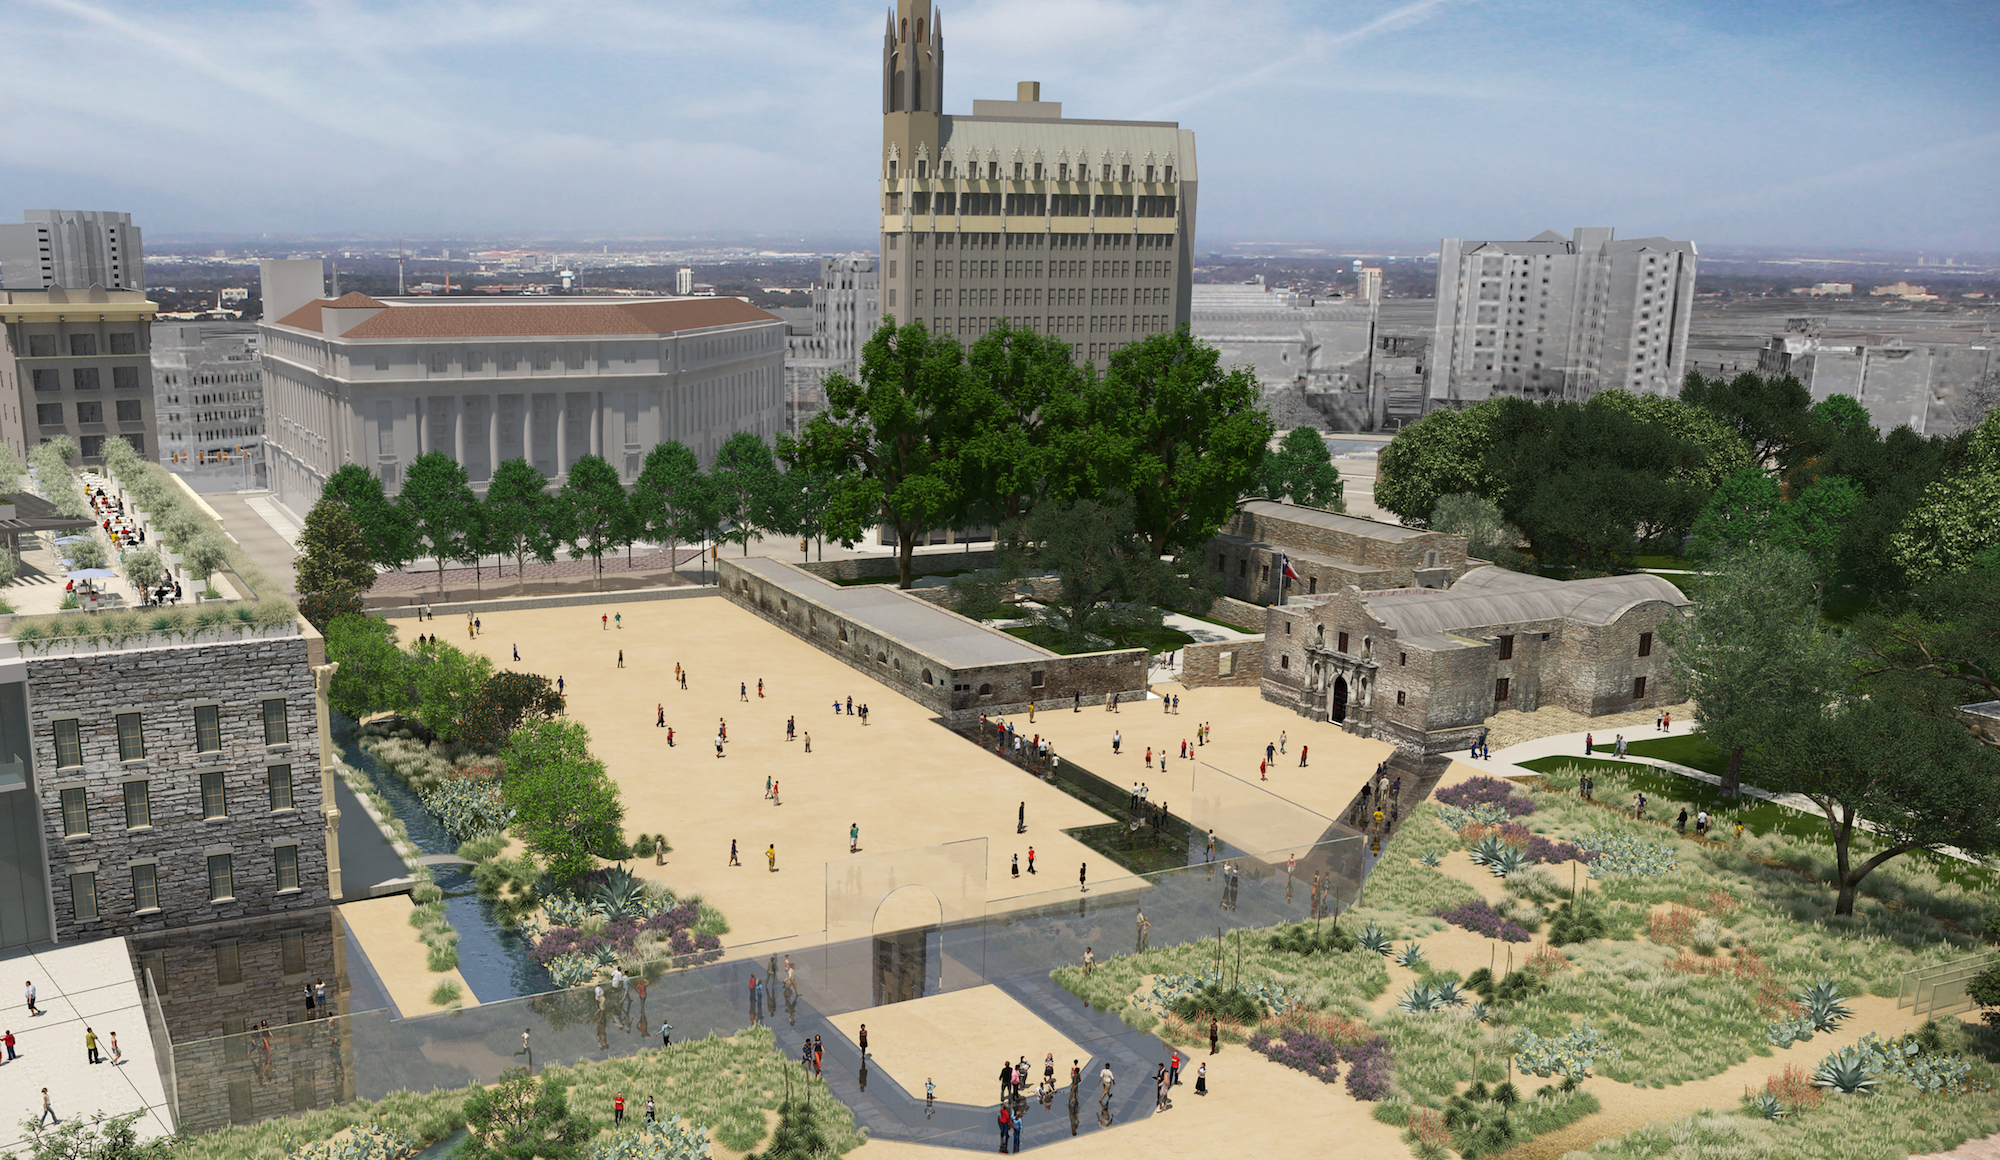 Reimagined Alamo Plaza Design Ignores 1871 Deed by Enclosing Plaza